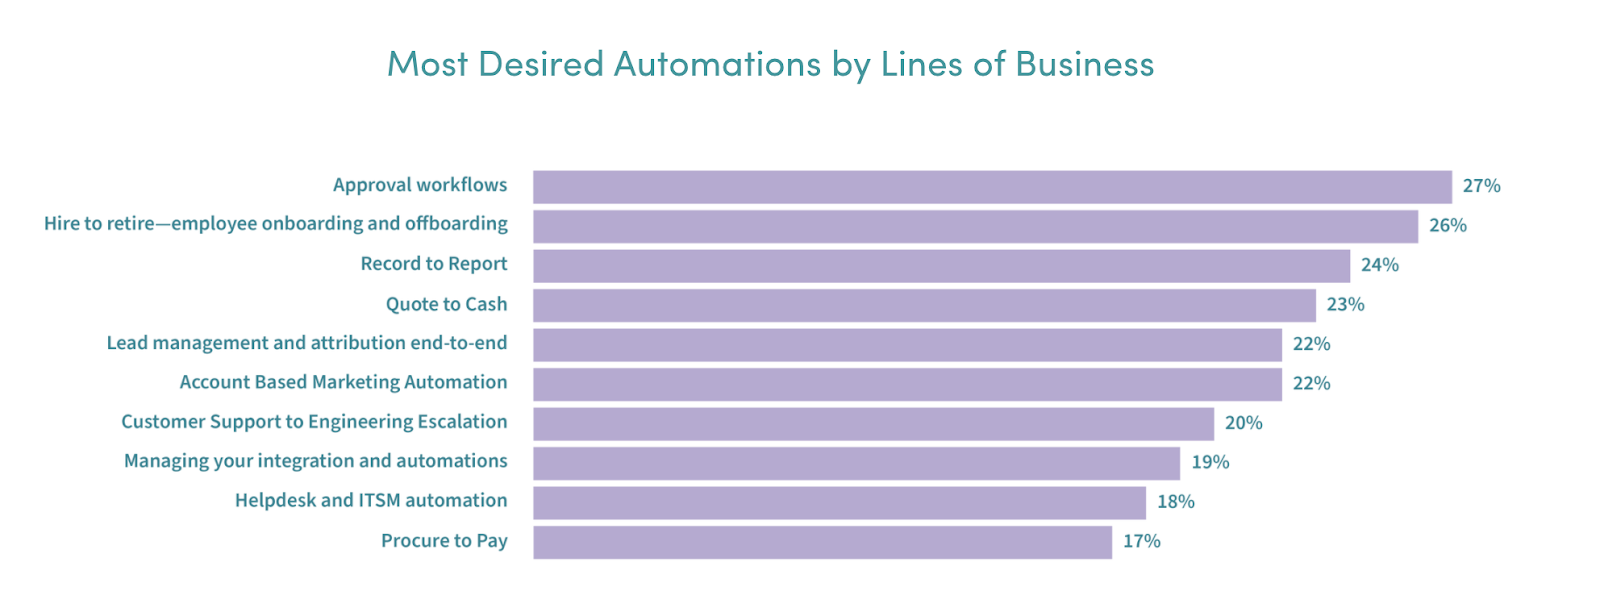 A bar graph that shows the most desired workflows across various lines of business